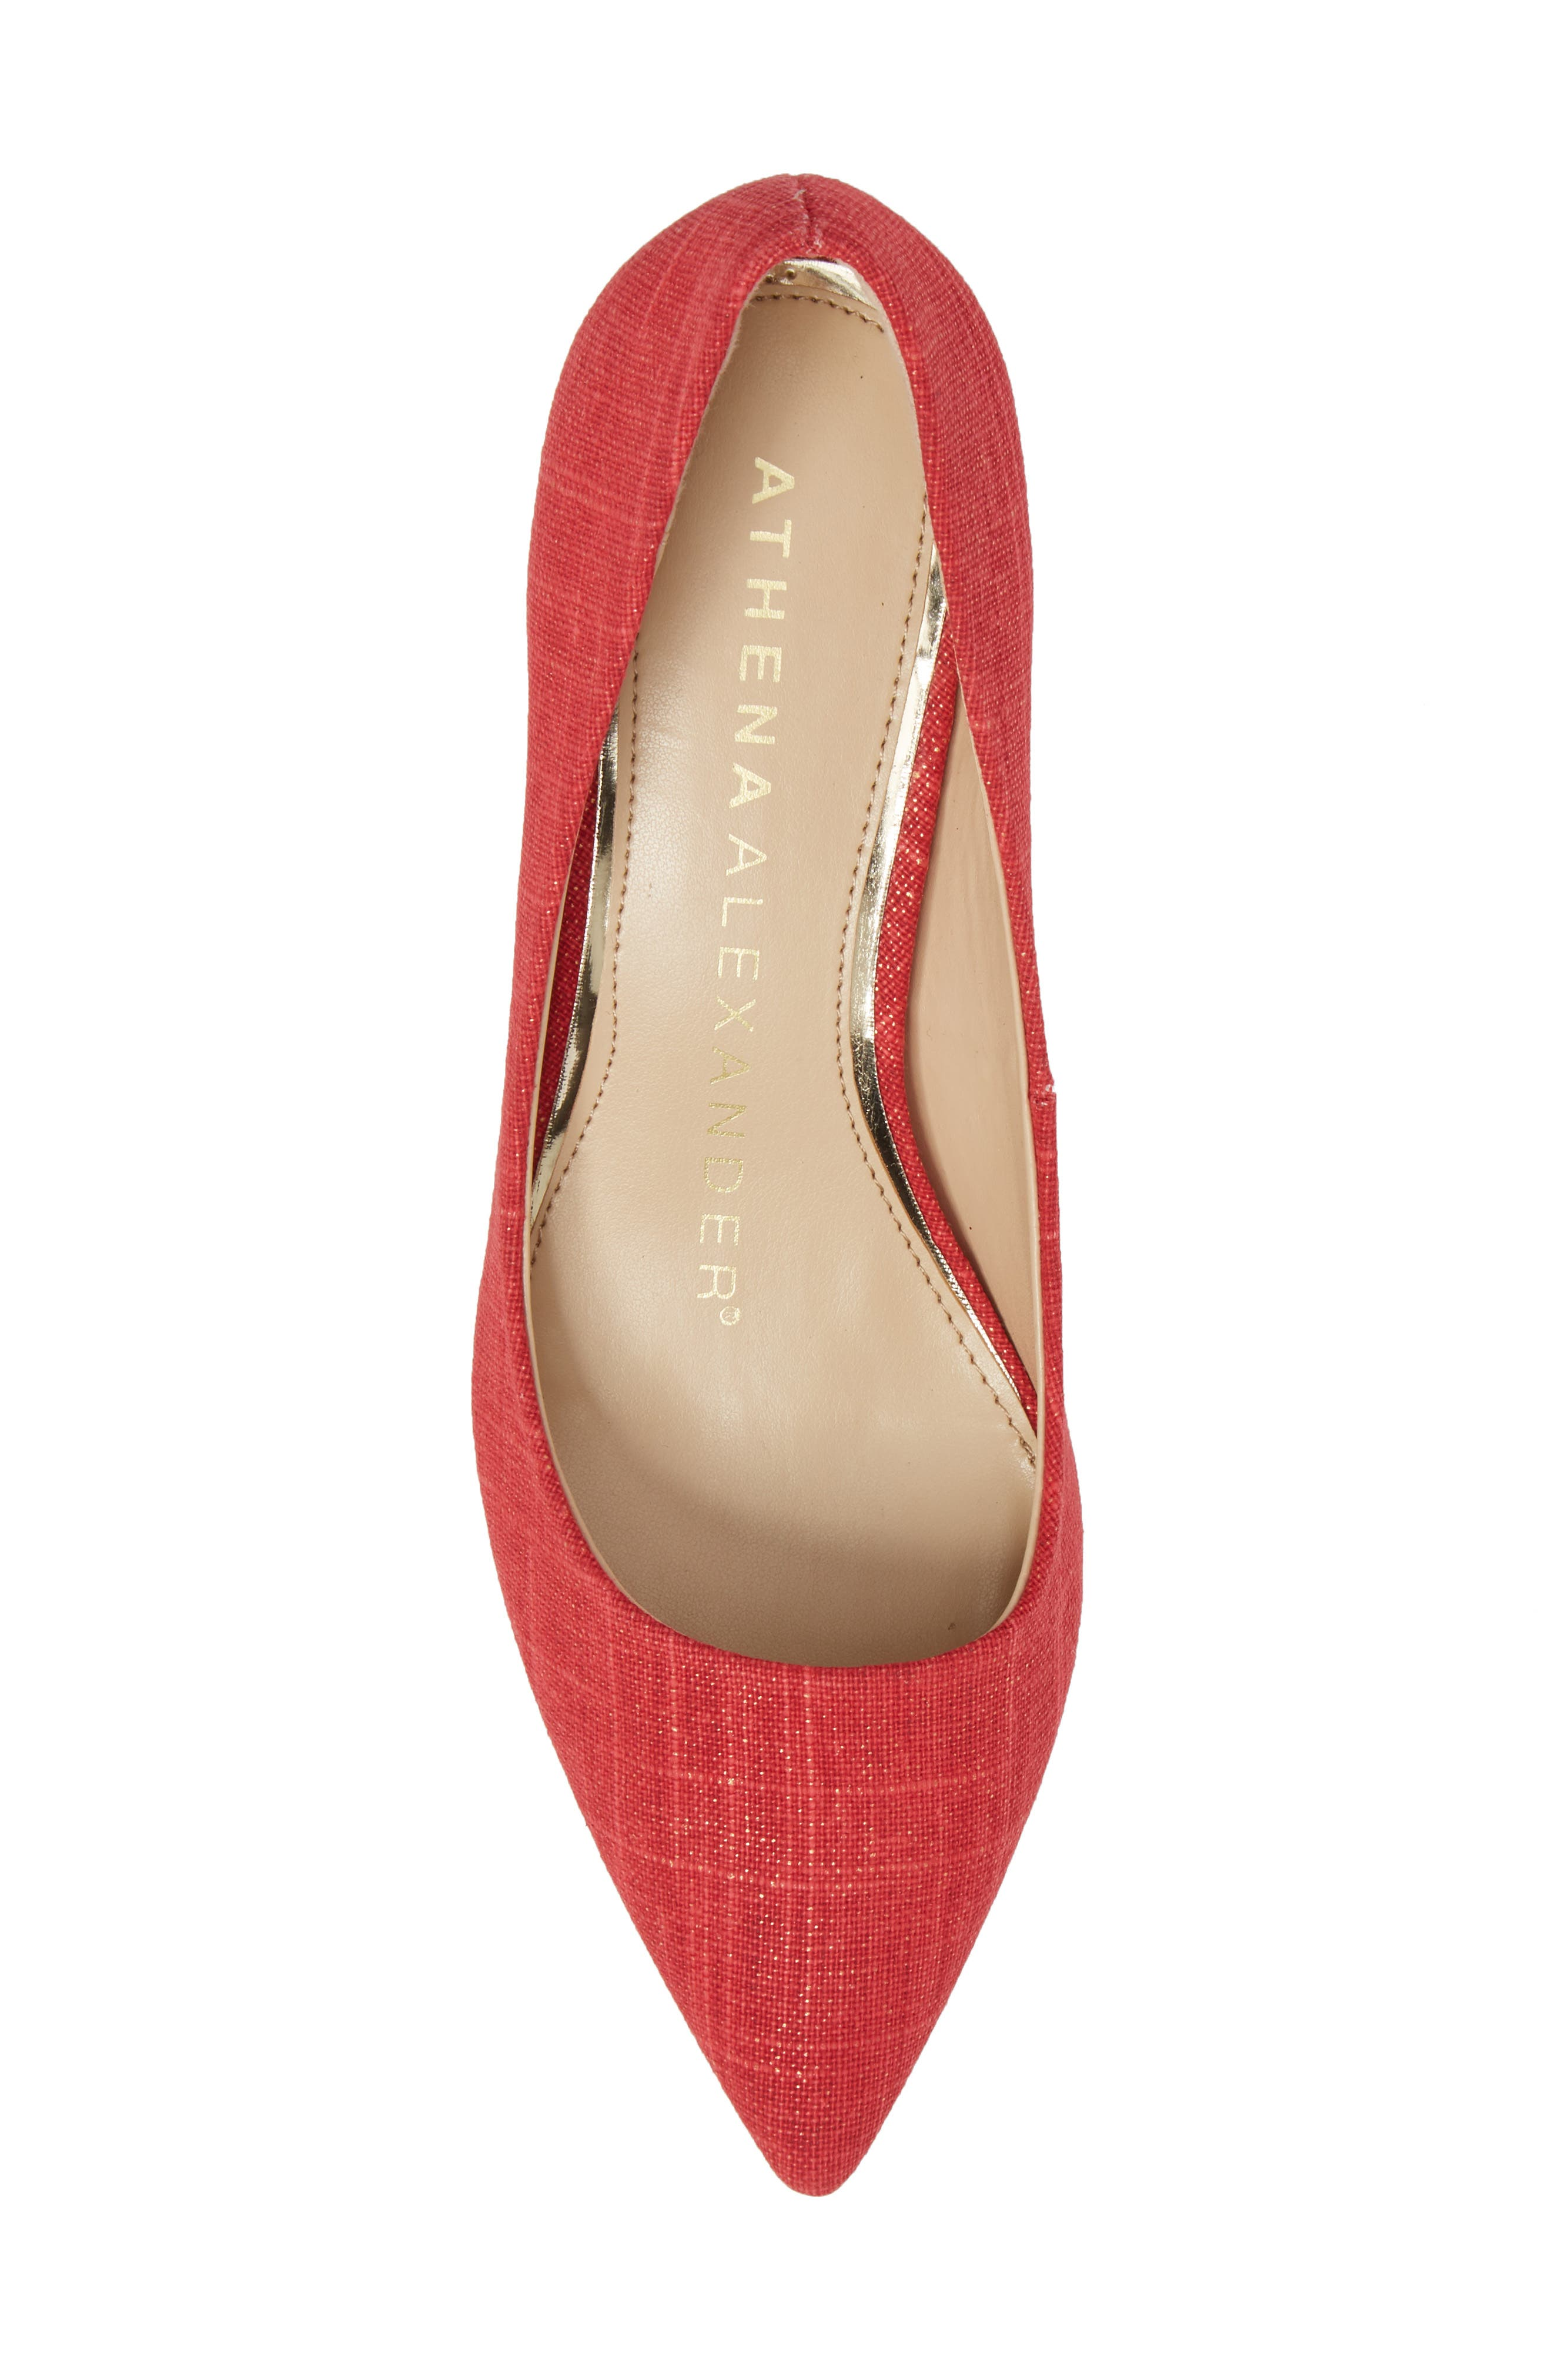 Target Kitten Heel Pump,                             Alternate thumbnail 5, color,                             Red Fabric